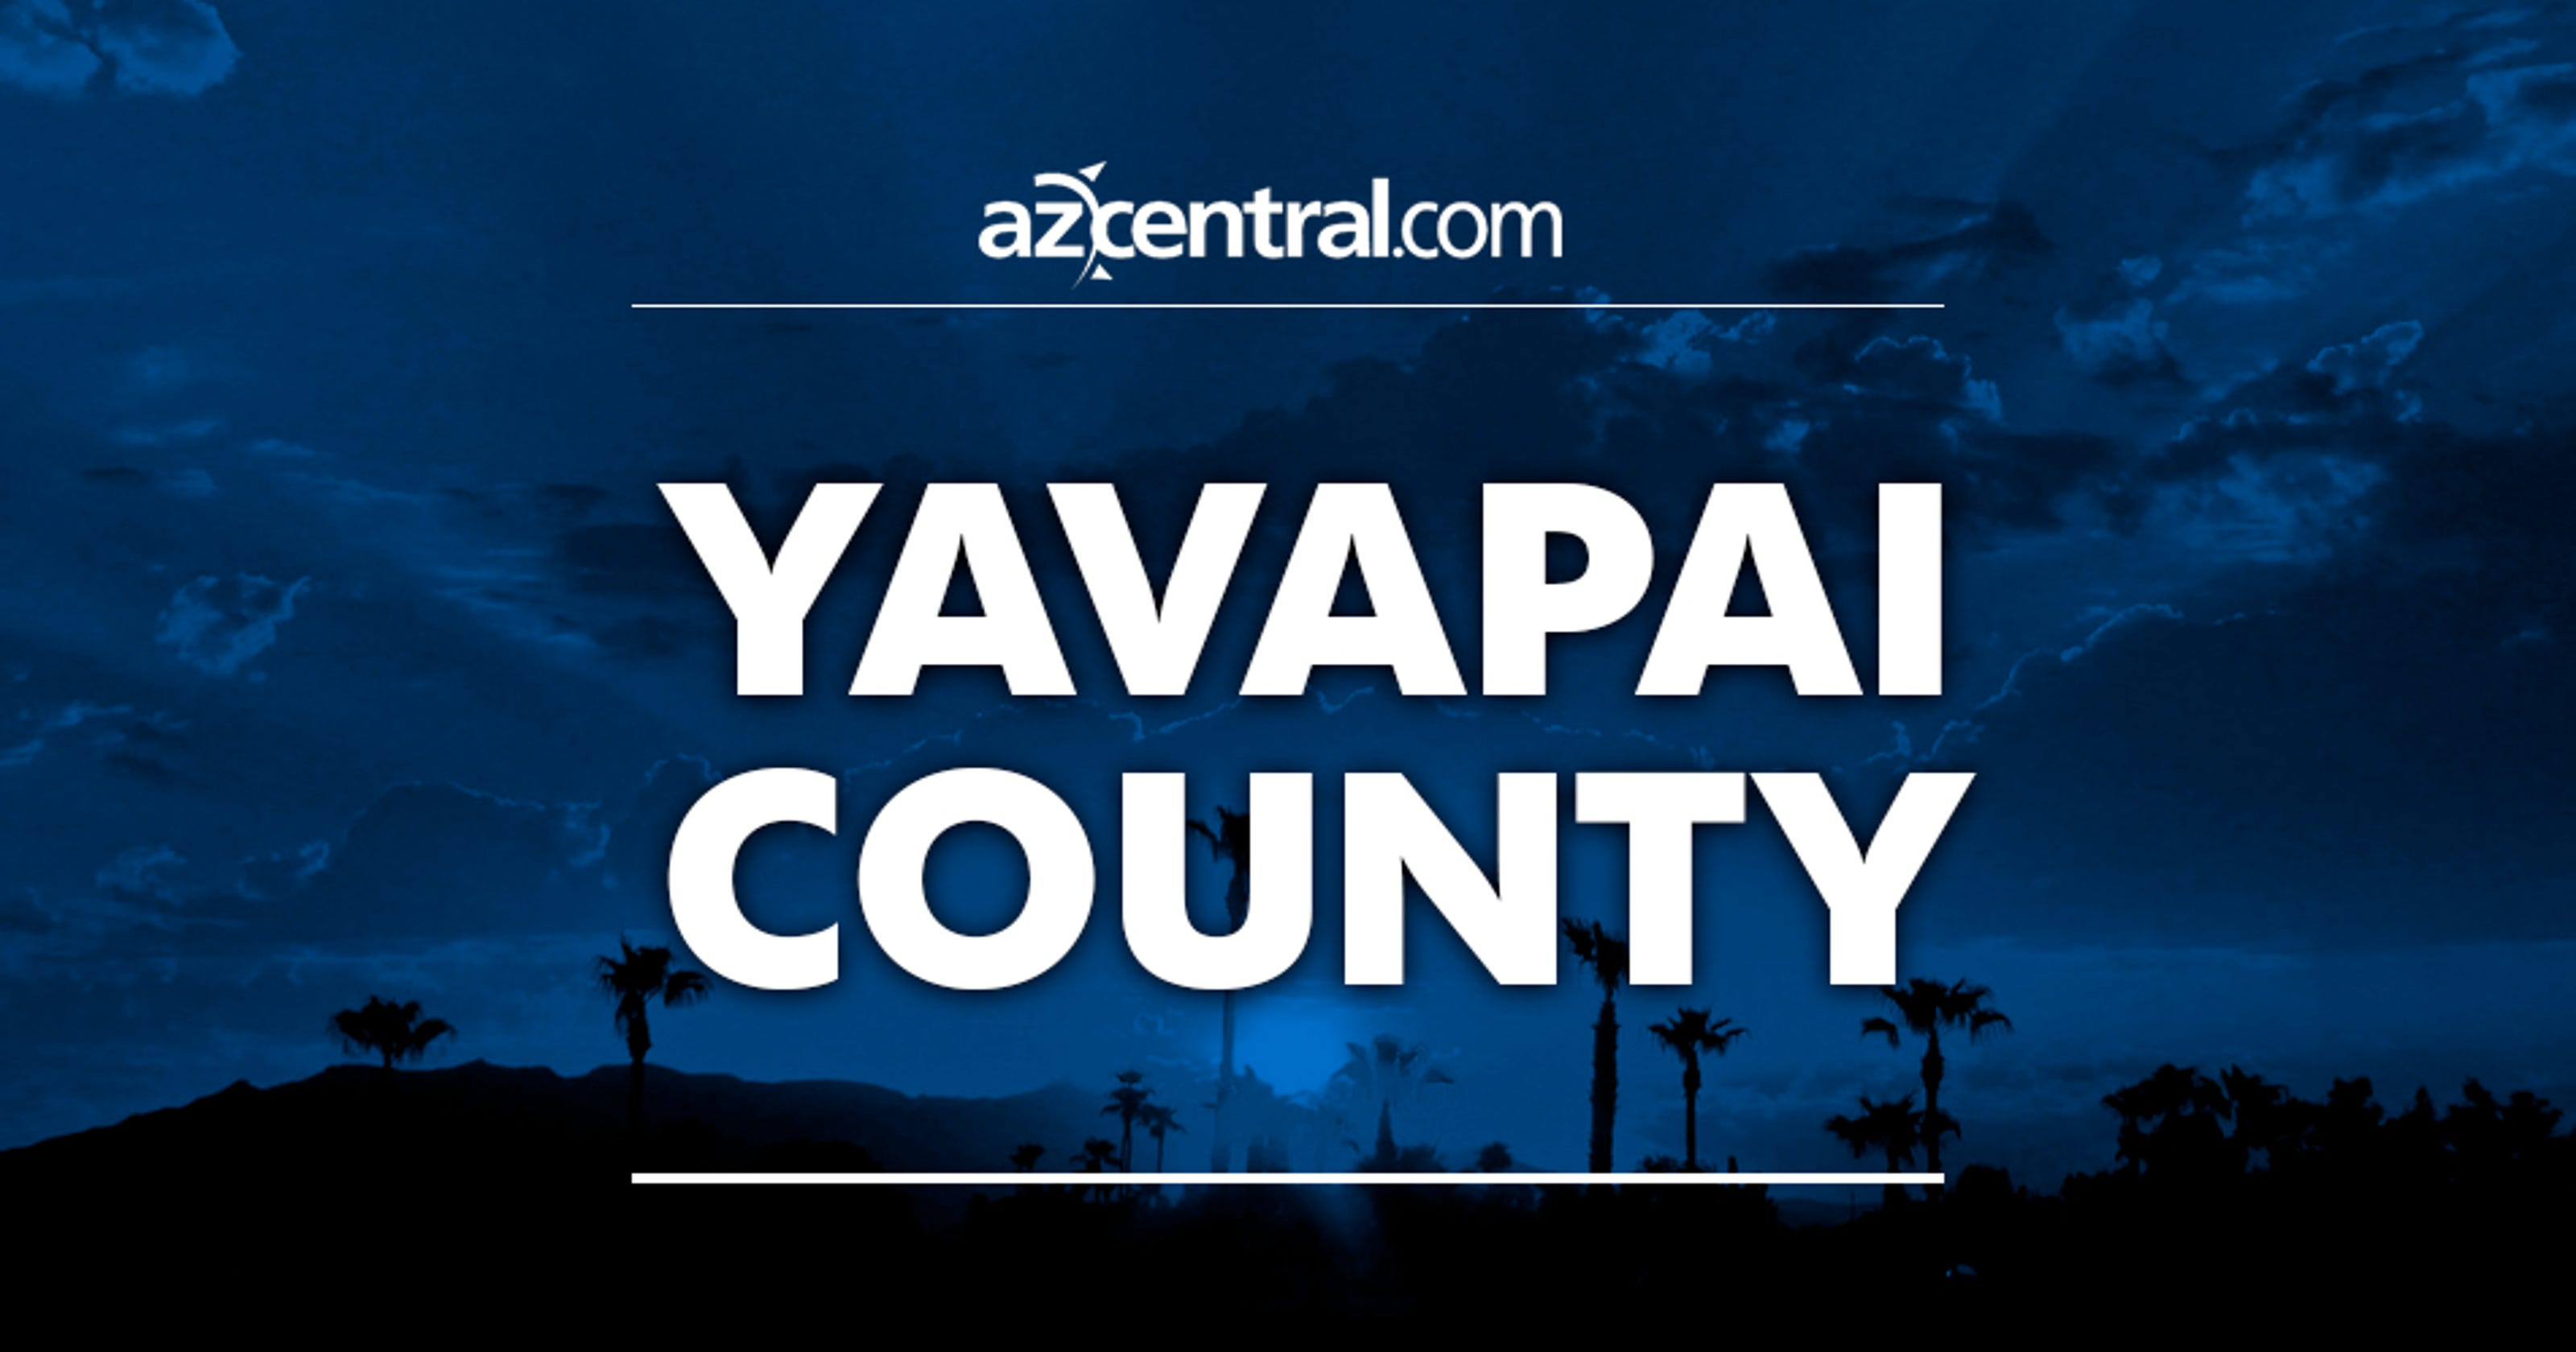 Sheriff: Murder-suicide suspected in Yavapai County deaths